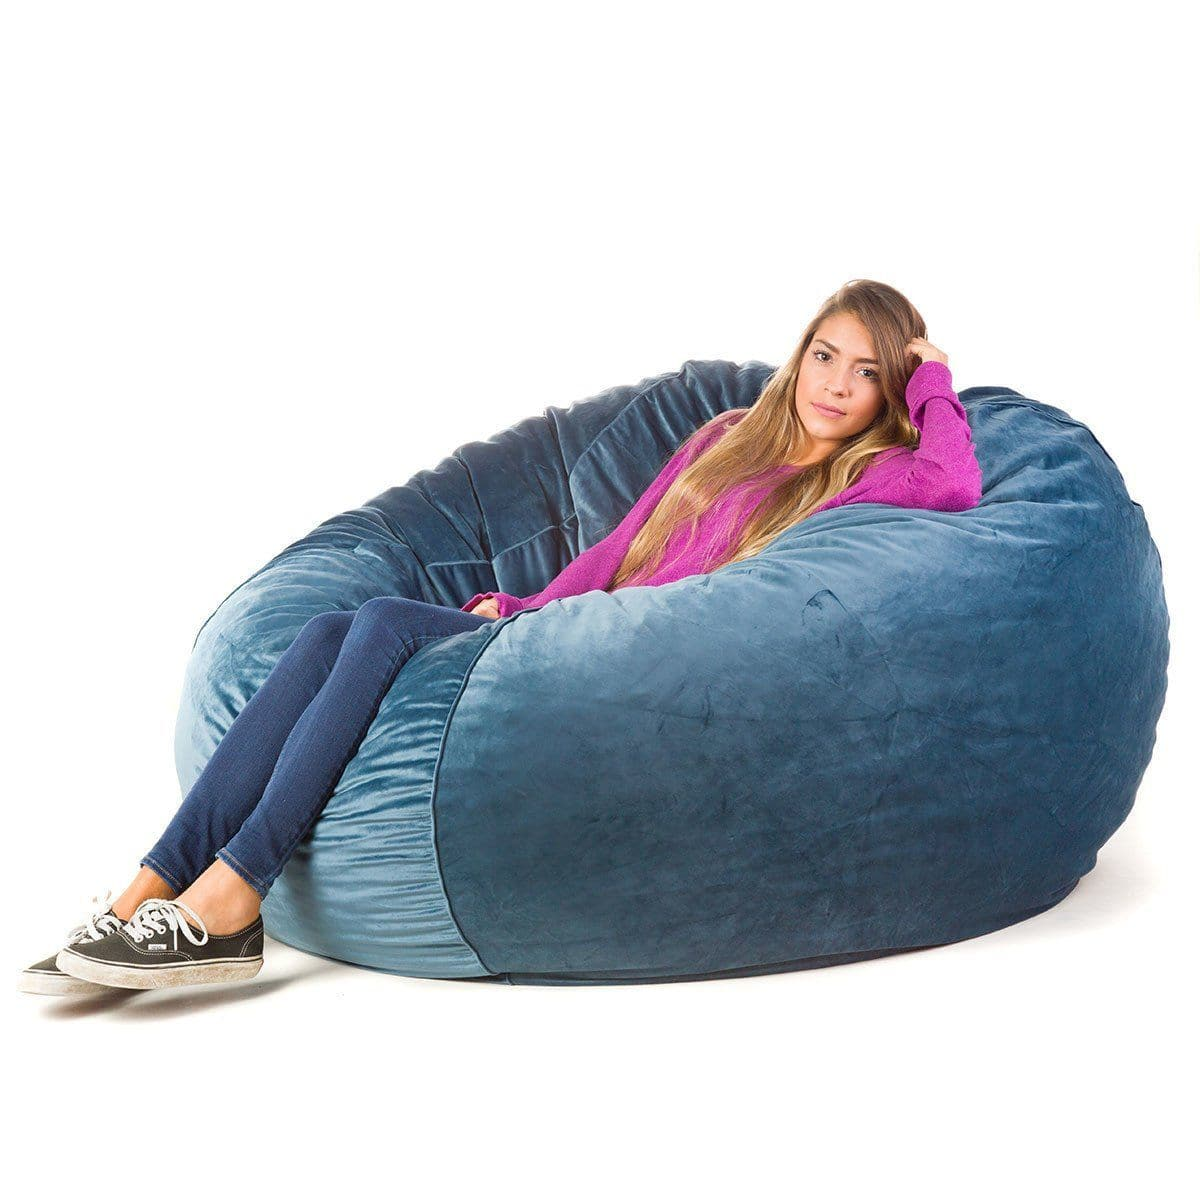 teal bean bag chair office for short person cordaroy s convertible bags there a bed inside posh product details